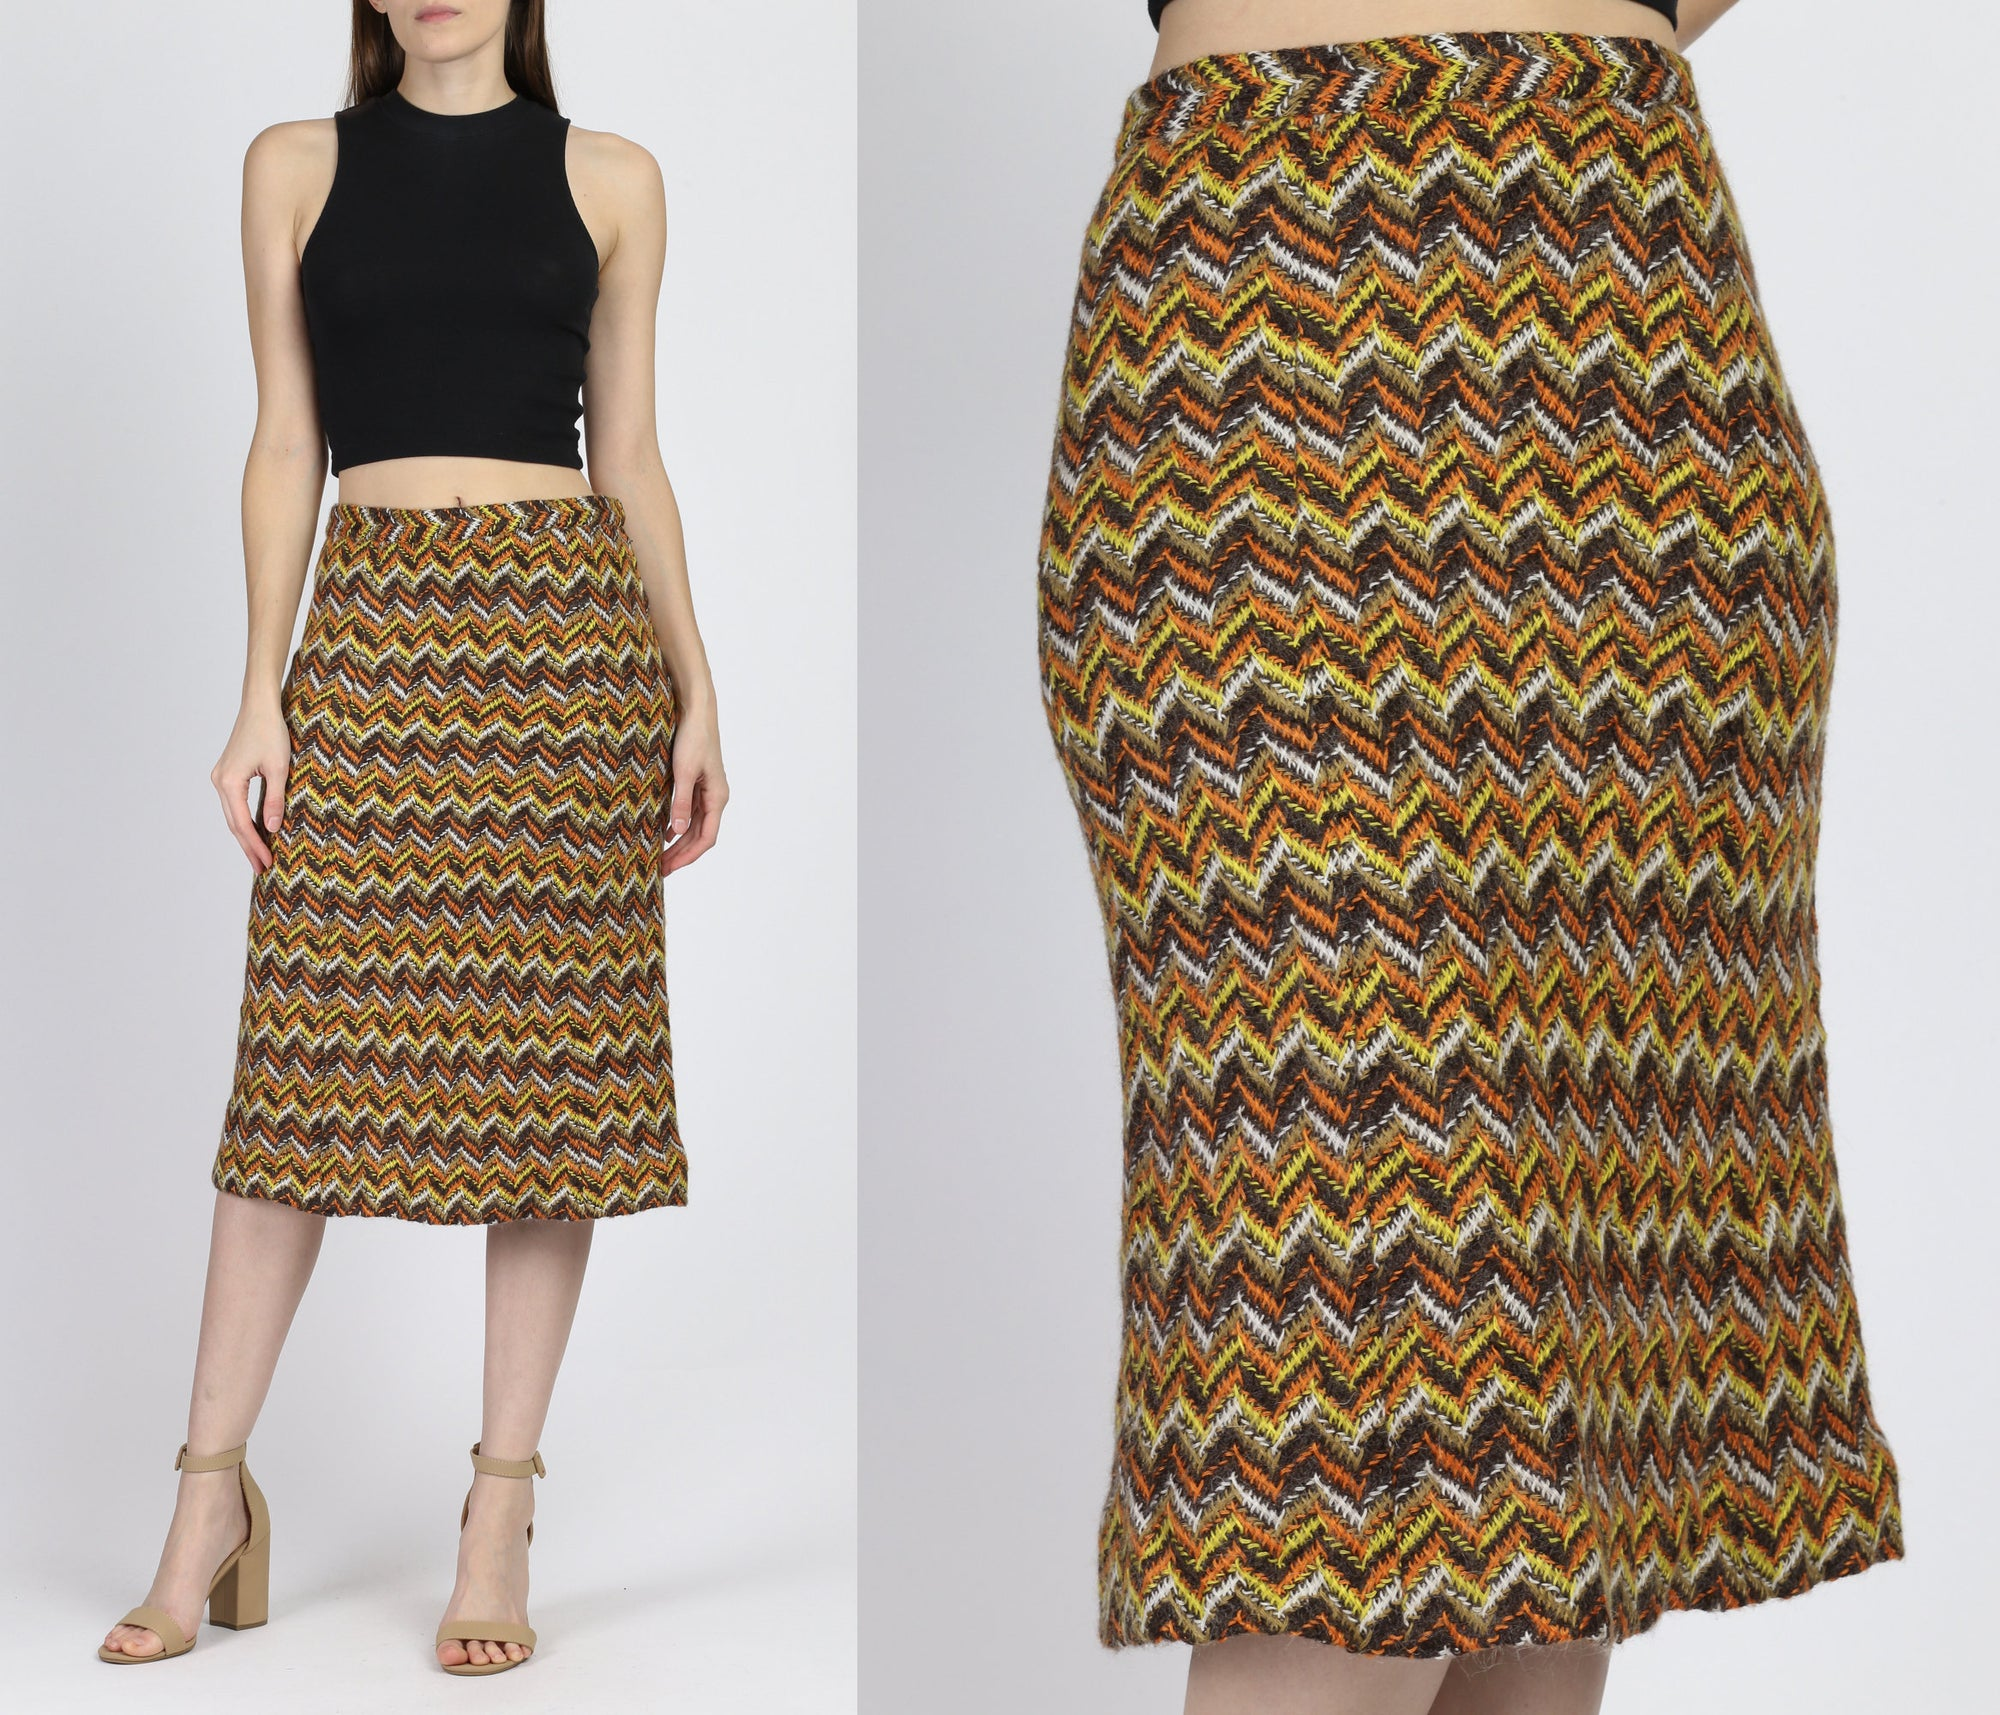 Retro 70s Zig Zag Knit Skirt - Medium